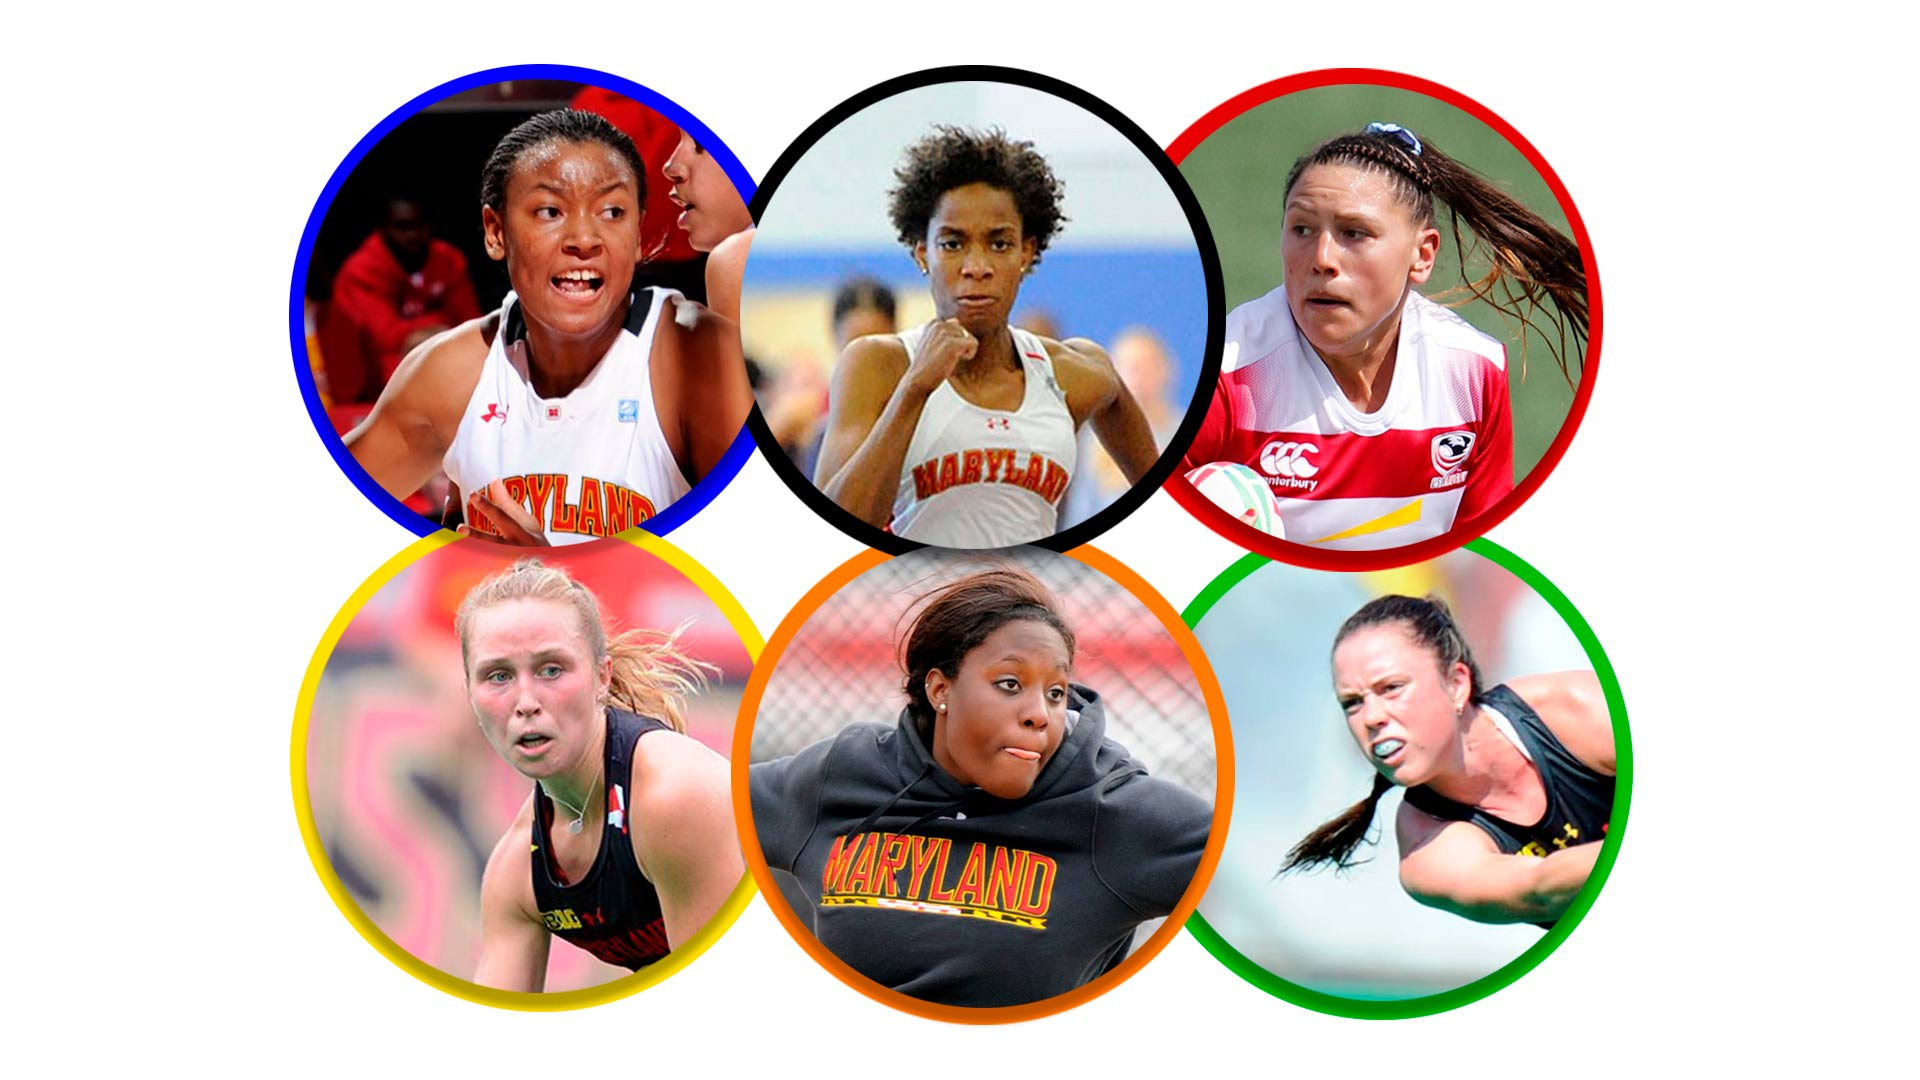 Clockwise from top left, Terps Diandra Tchatchouang, Thea LaFond, Abby Gustaitis, Grace Balsdon, Chioma Onyekwere and Nike Lorenz will compete in the Tokyo Olympics, which open Friday. (Abby Gustaitis photo by Kevin Light/Getty Images; all other photos courtesy of Maryland Athletics; collage by Stephanie S. Cordle)